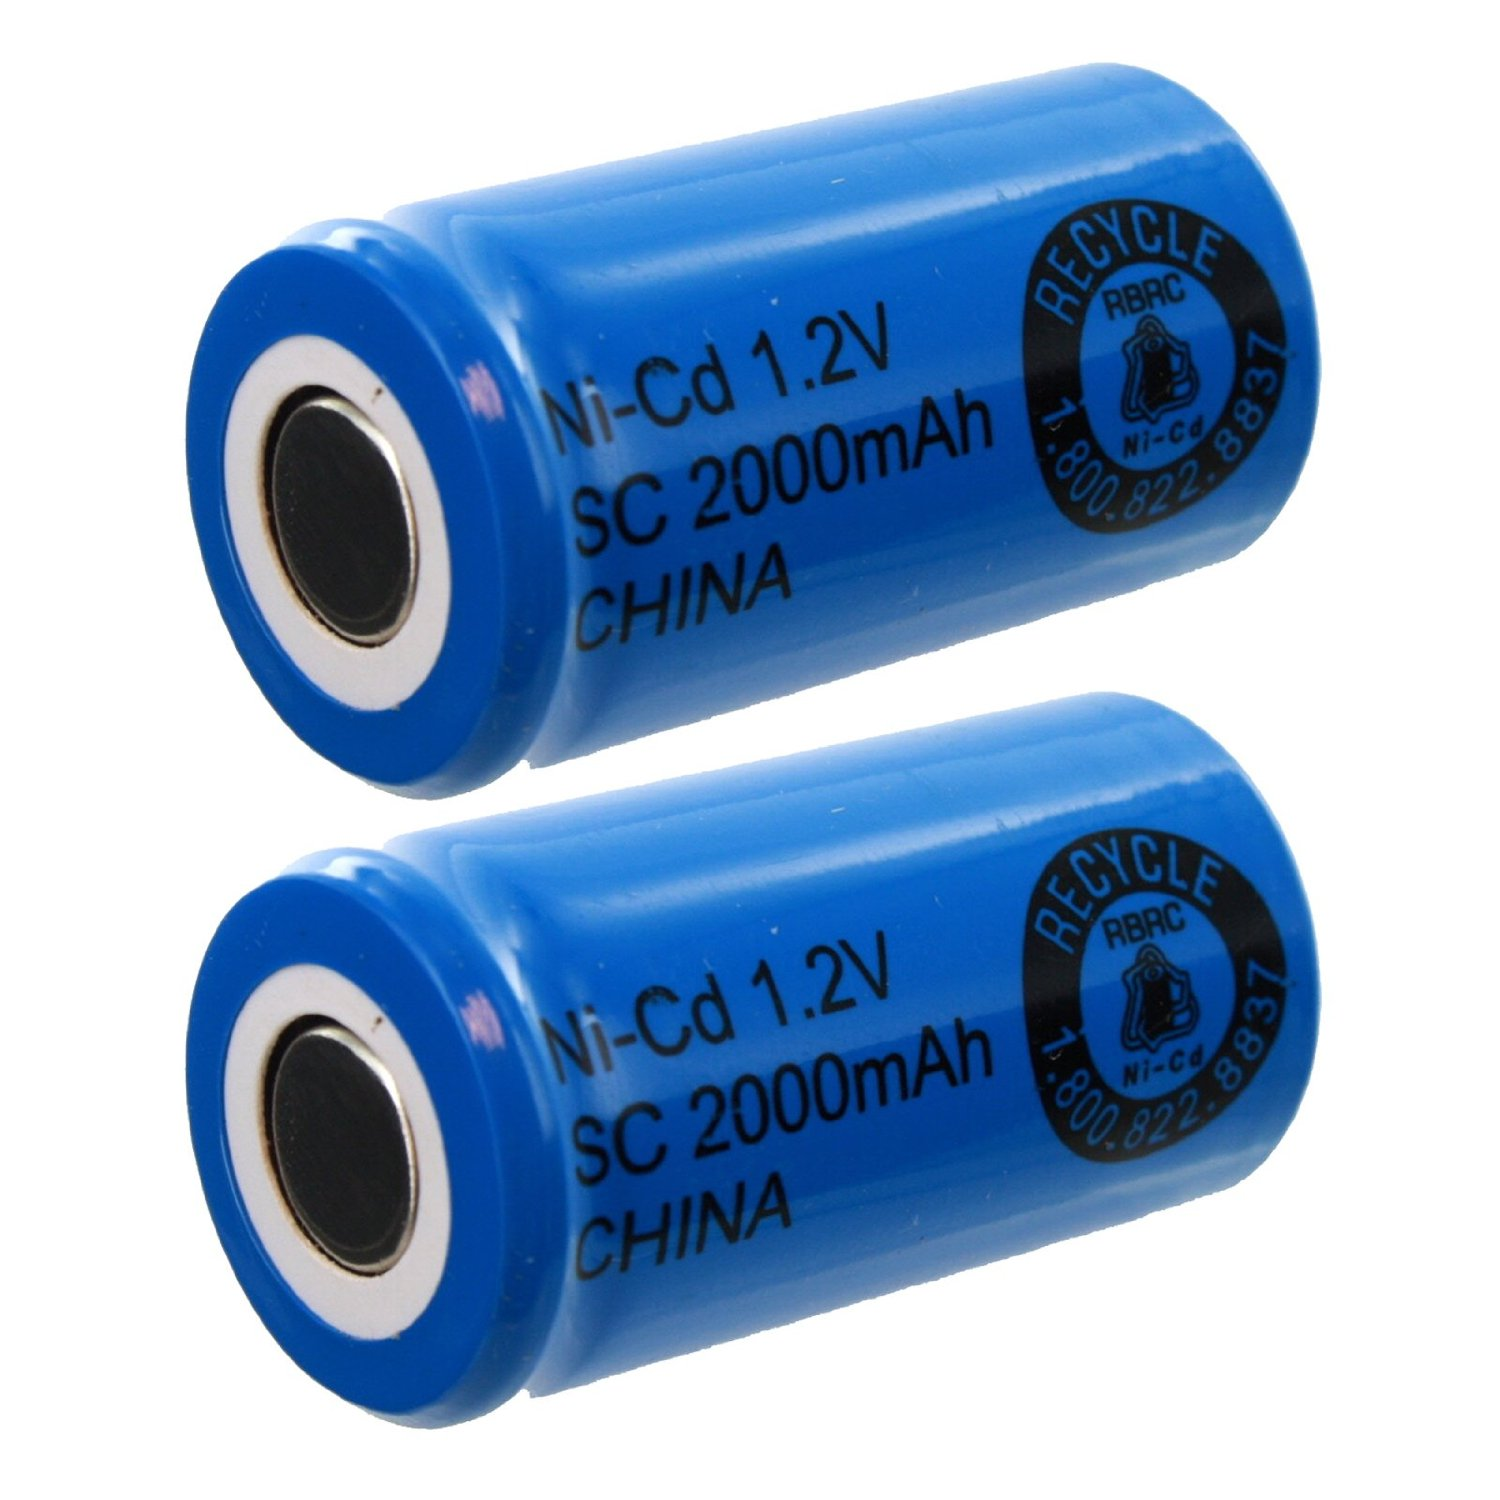 2x Exell SubC 1.2V 2000mAh NiCD Flat Top Rechargeable Batteries for medical instruments/equipment, electric razors, toothbrushes, radio controlled devices, electric tools